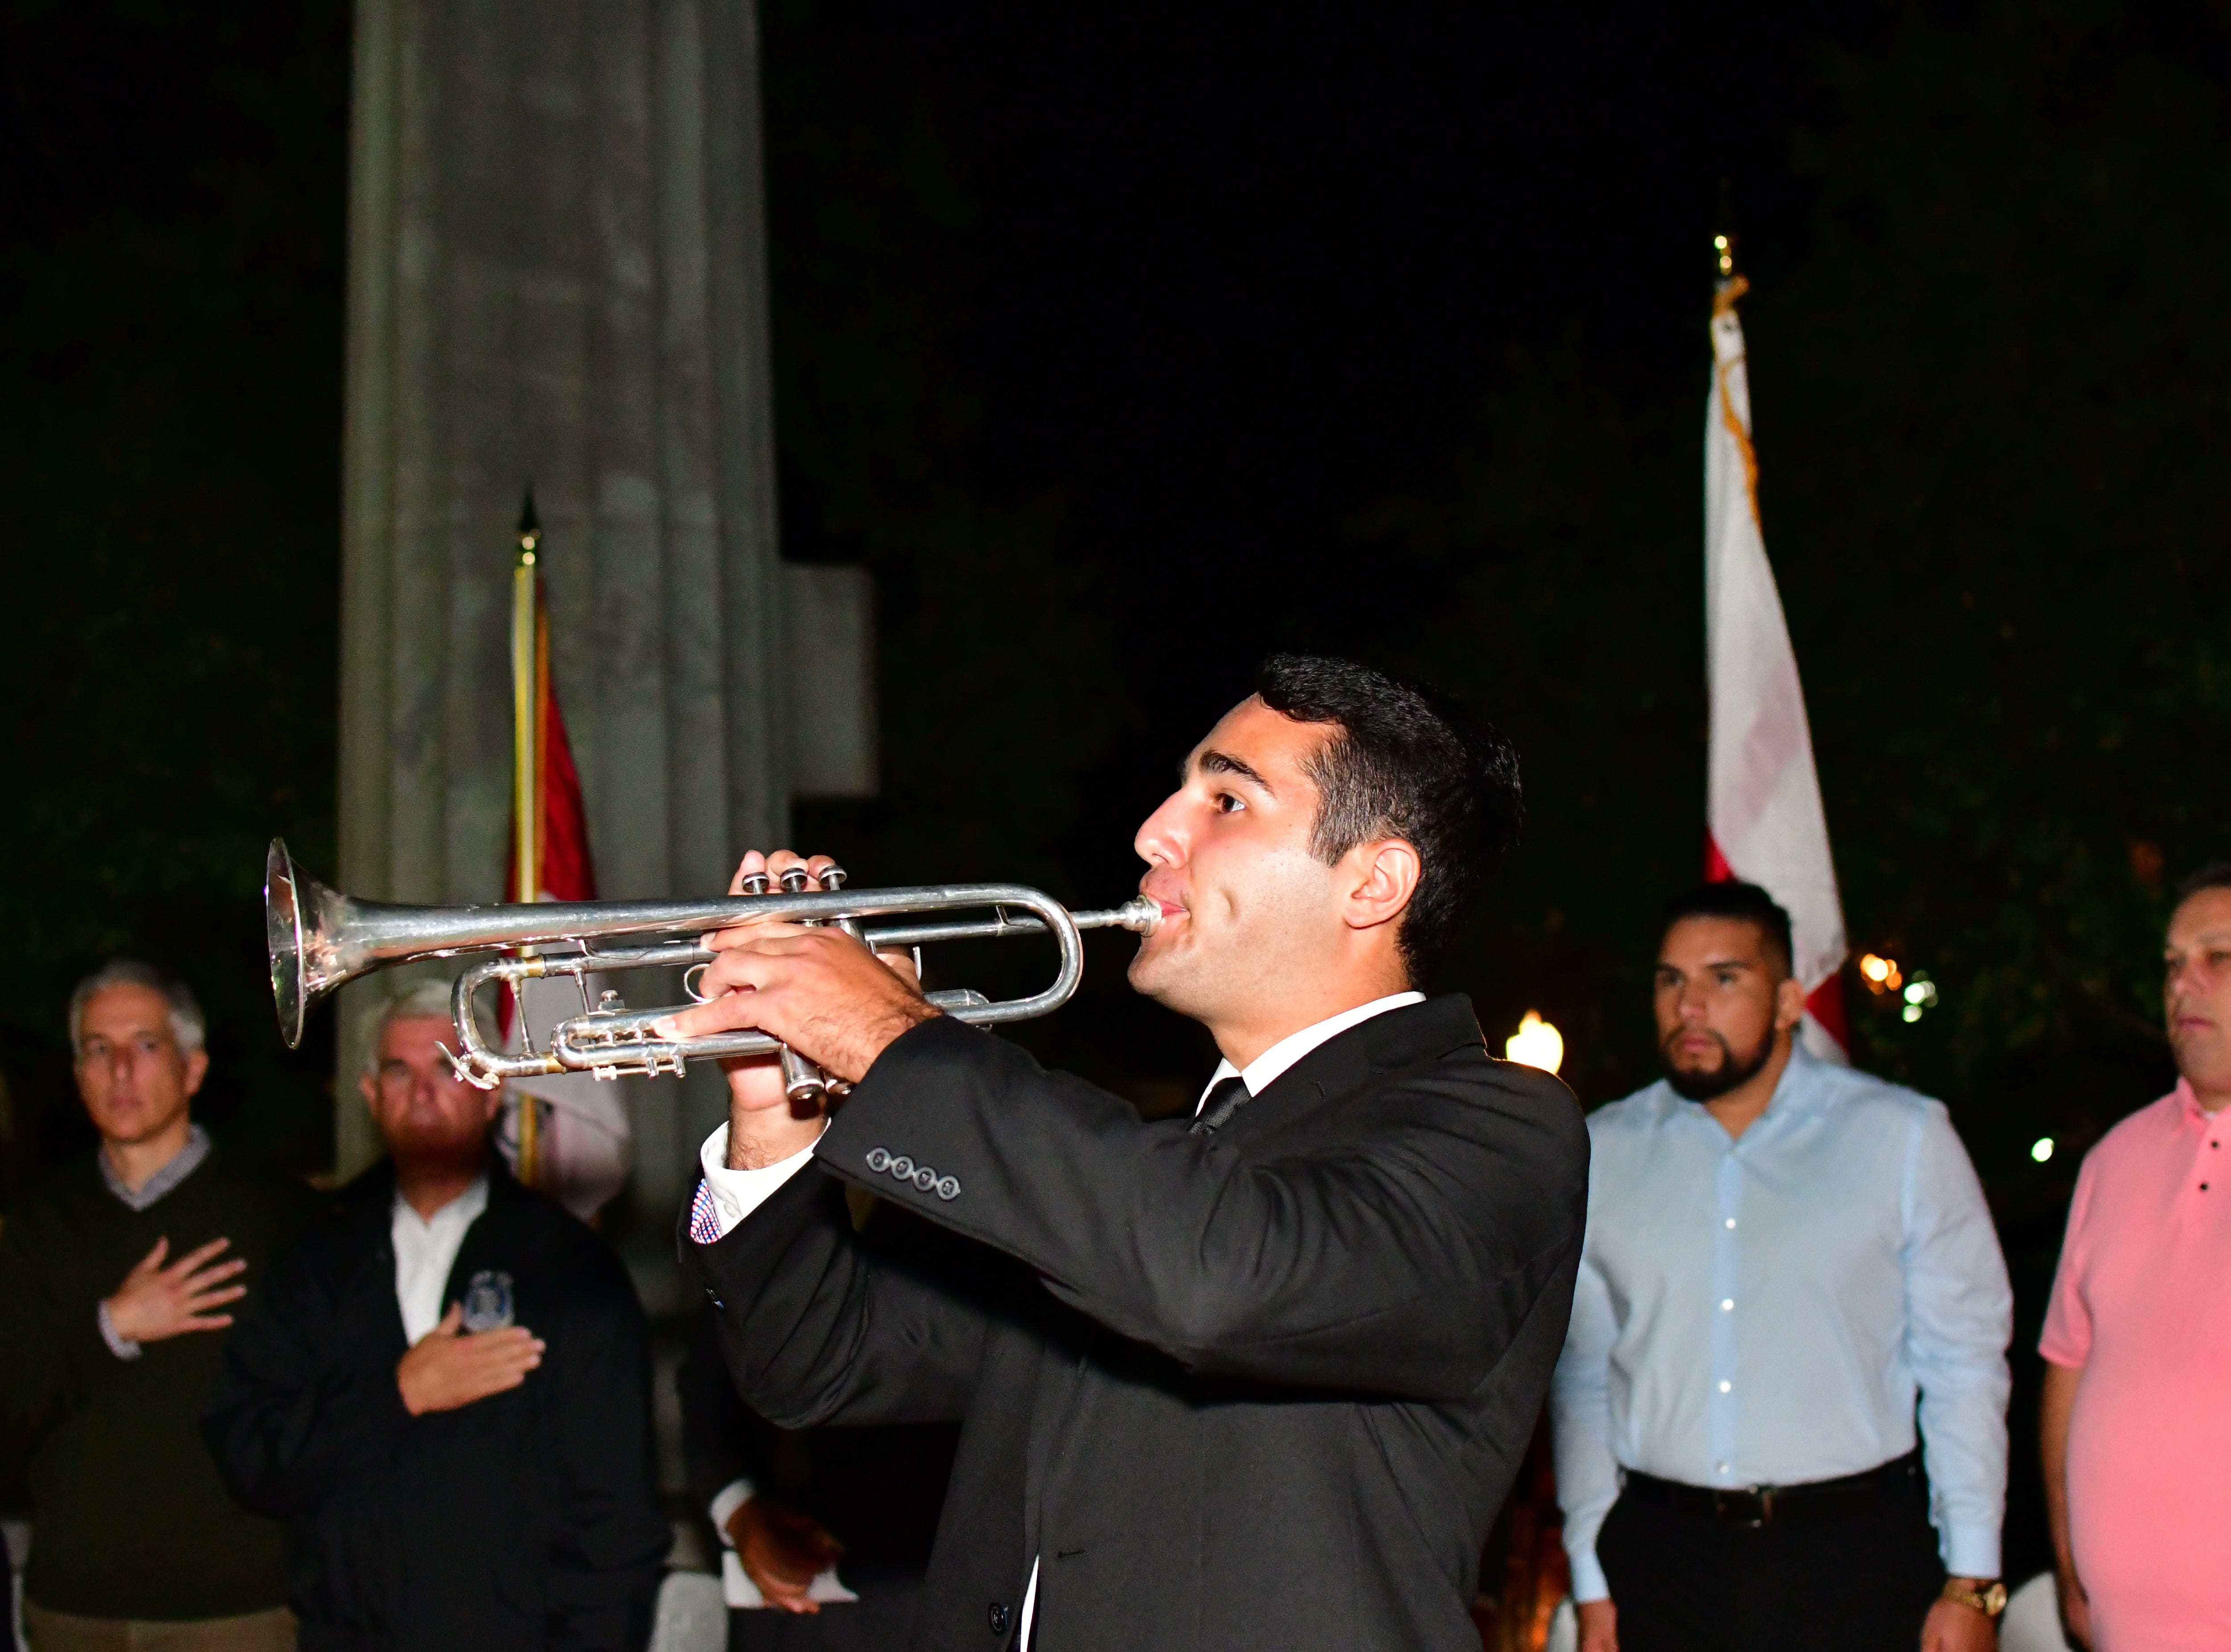 Sean Zuckerman plays TAPS on trumpet.  The Gold Star Mother's Day Committee sponsored its eighth annual event commemorating Gold Star Mother's Day on Sept. 30, at Van Neste Park, Ridgewood. After a short ceremony, hundreds of luminaries were lit to honor Gold Star Mothers (moms who had lost sons and daughters to the war) and their families.